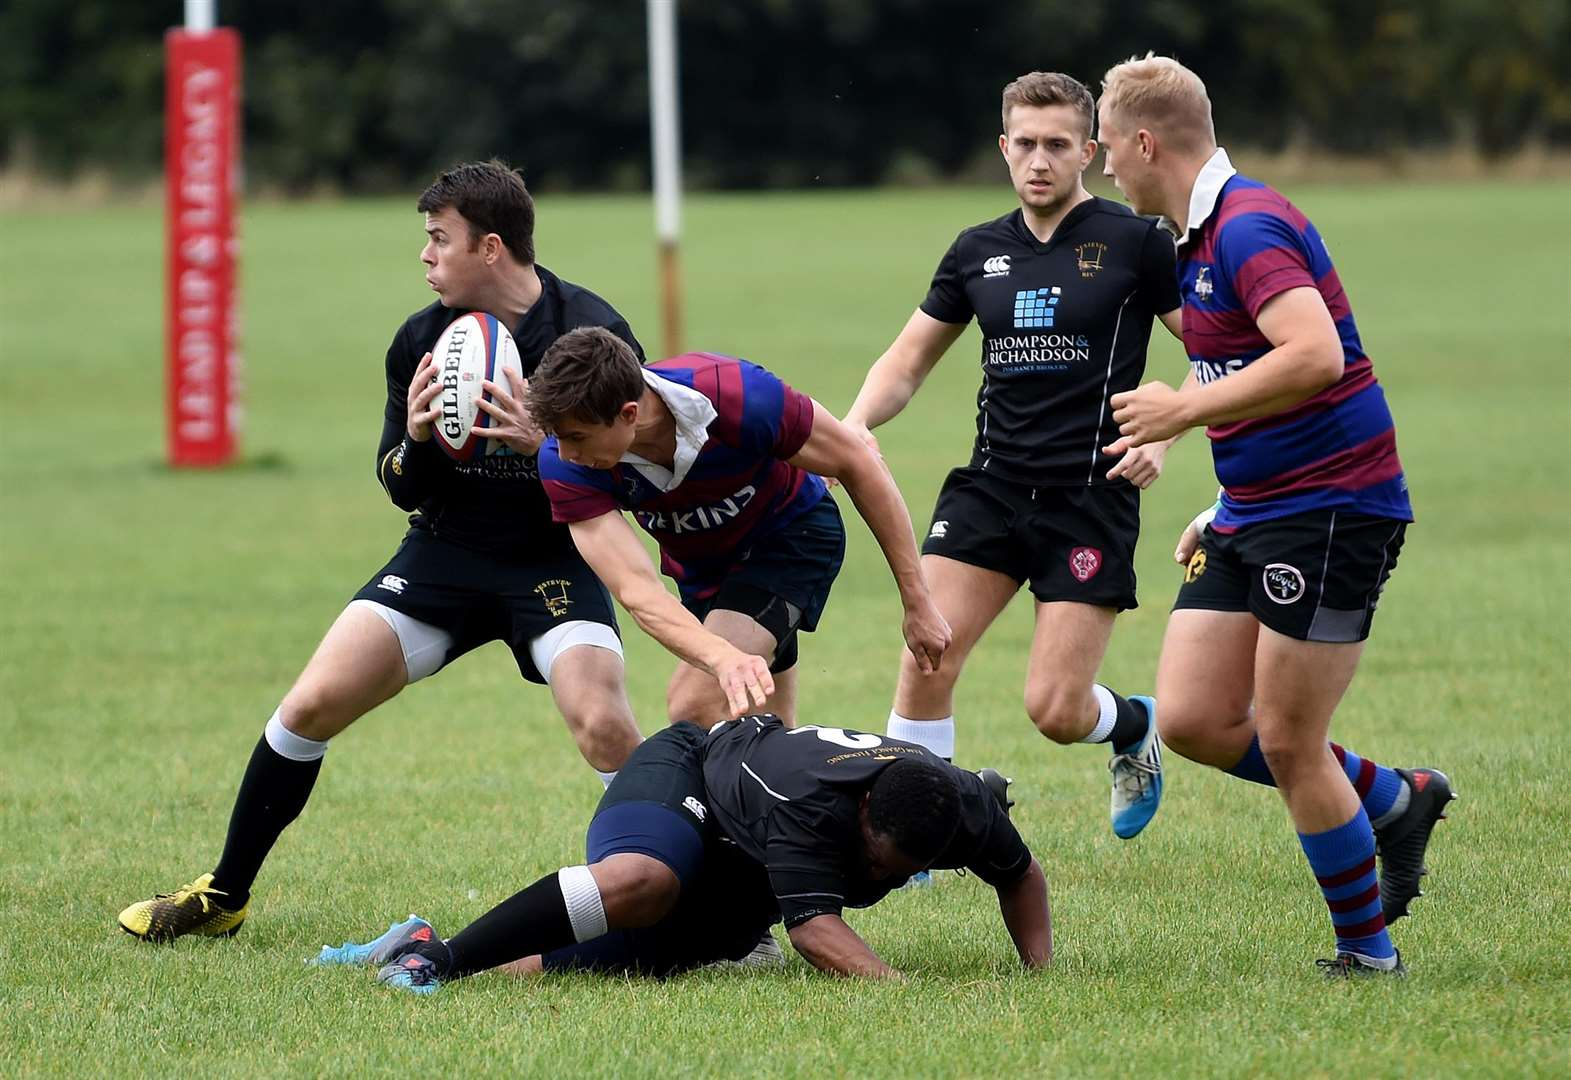 Kesteven RFC win first game of new campaign